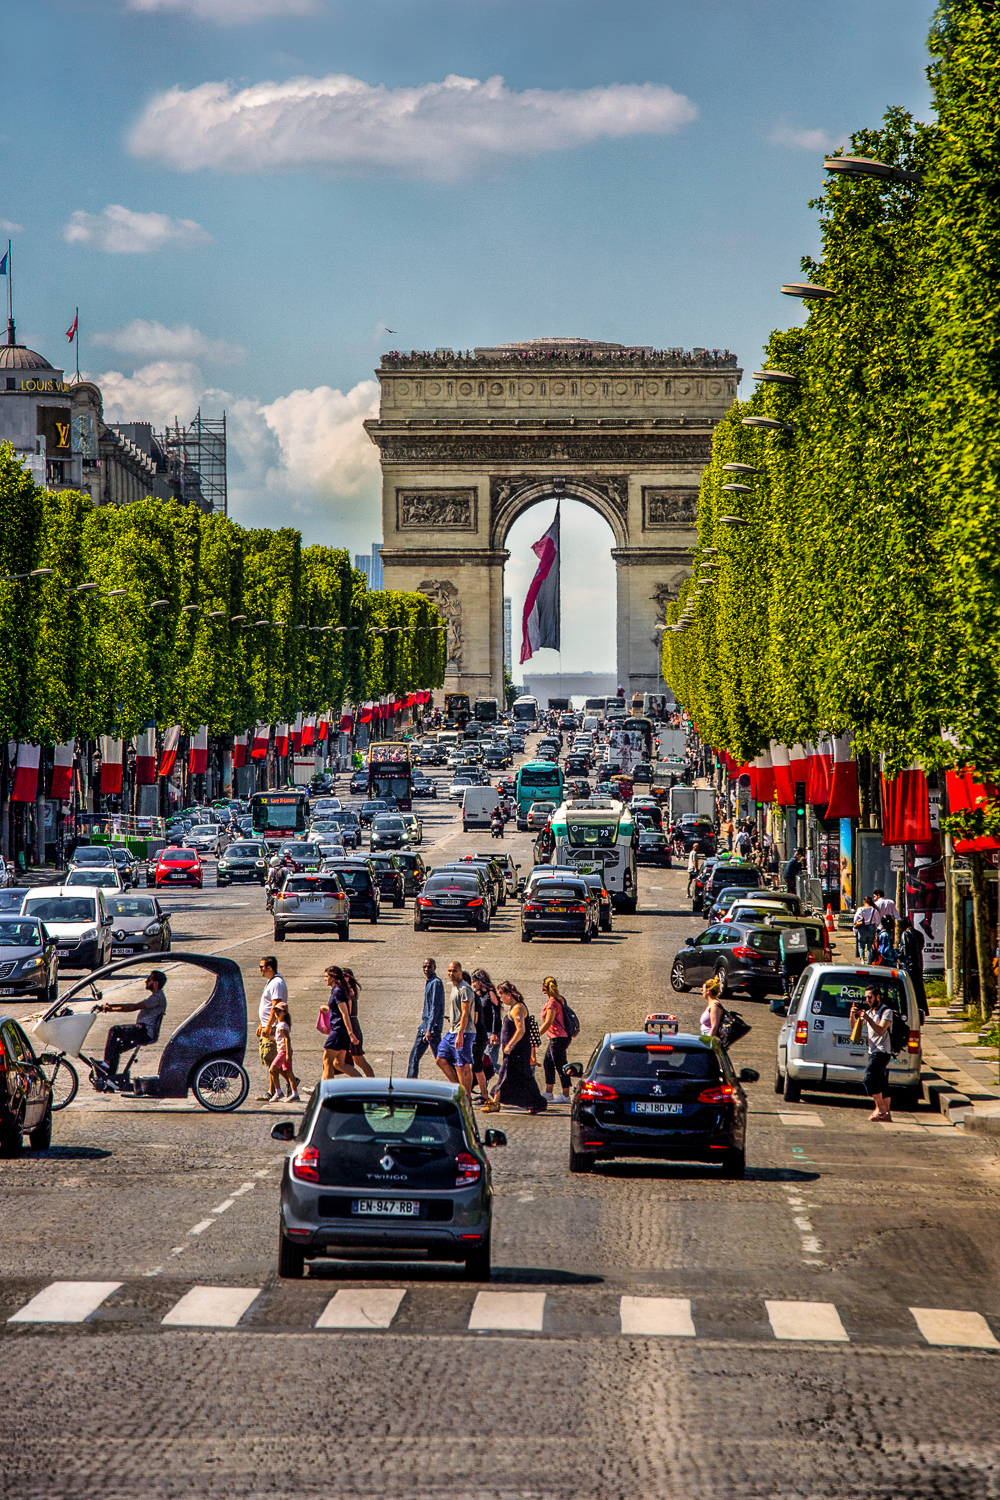 Arc-de-Triomphe, Champs-Elysees Paris, France